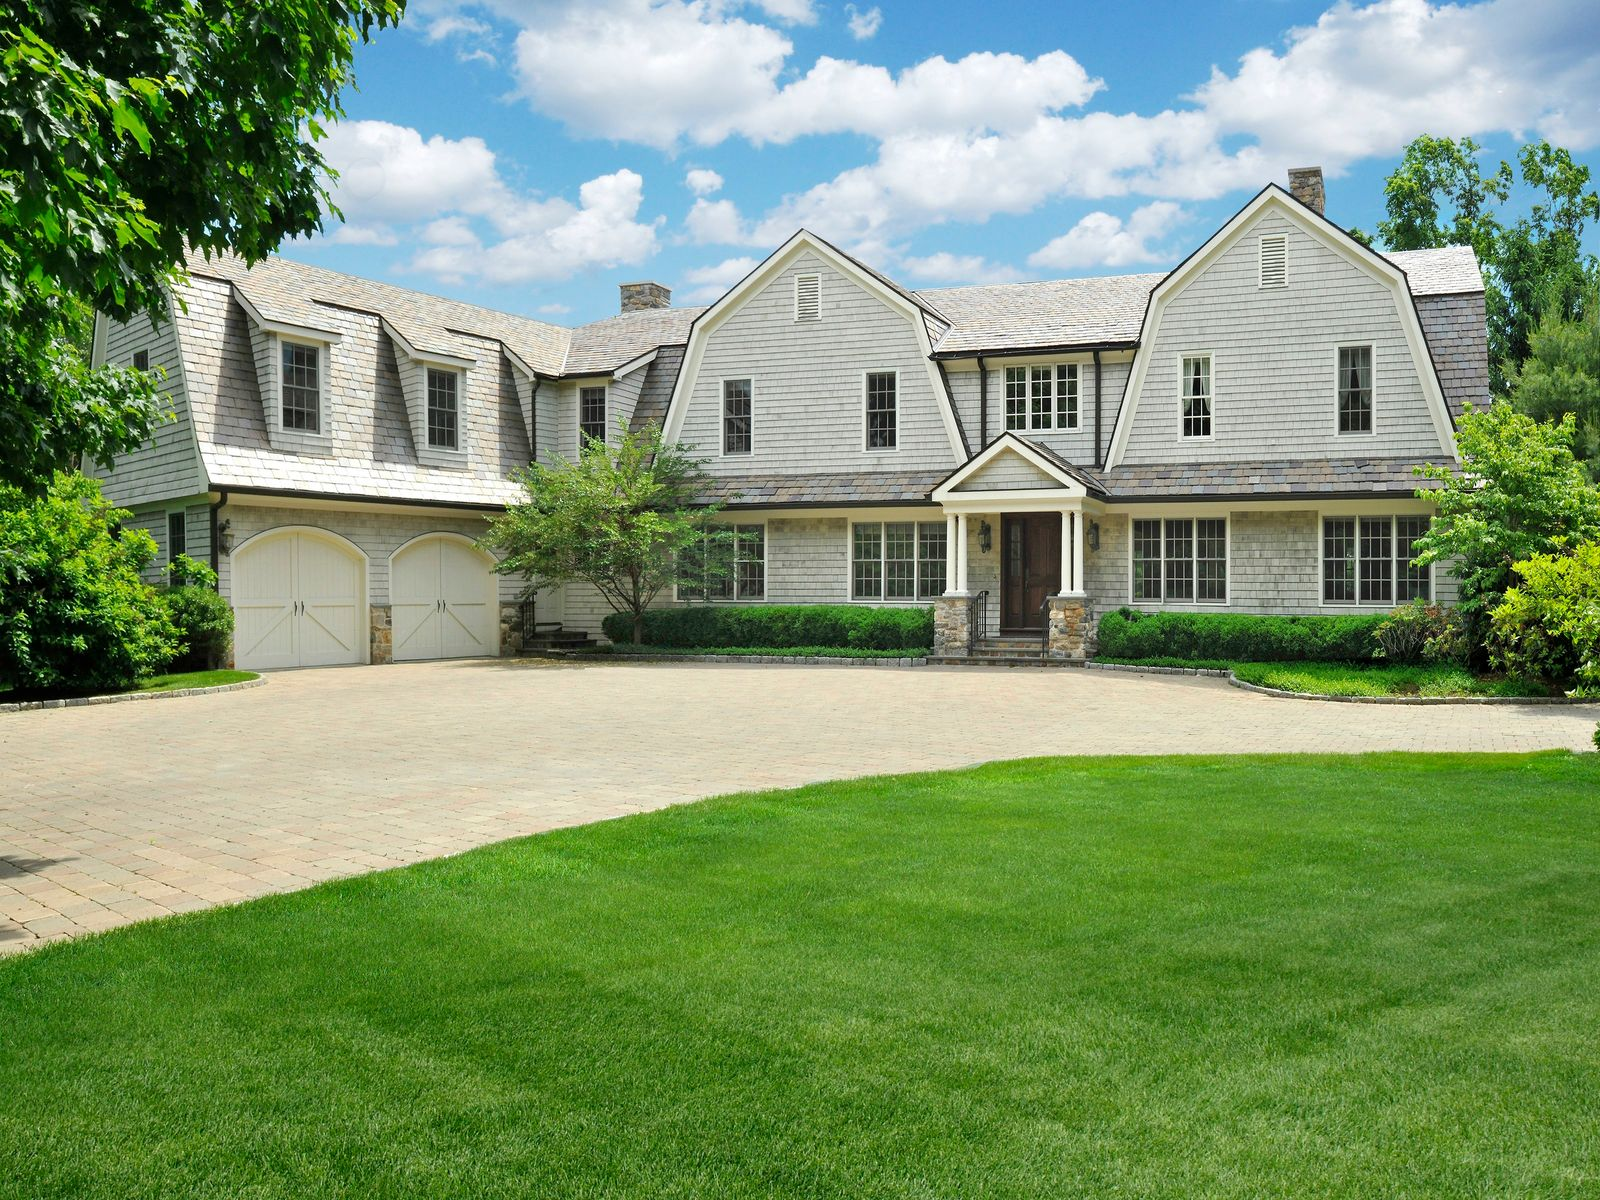 Gated Community, Greenwich CT Single Family Home - Greenwich Real Estate